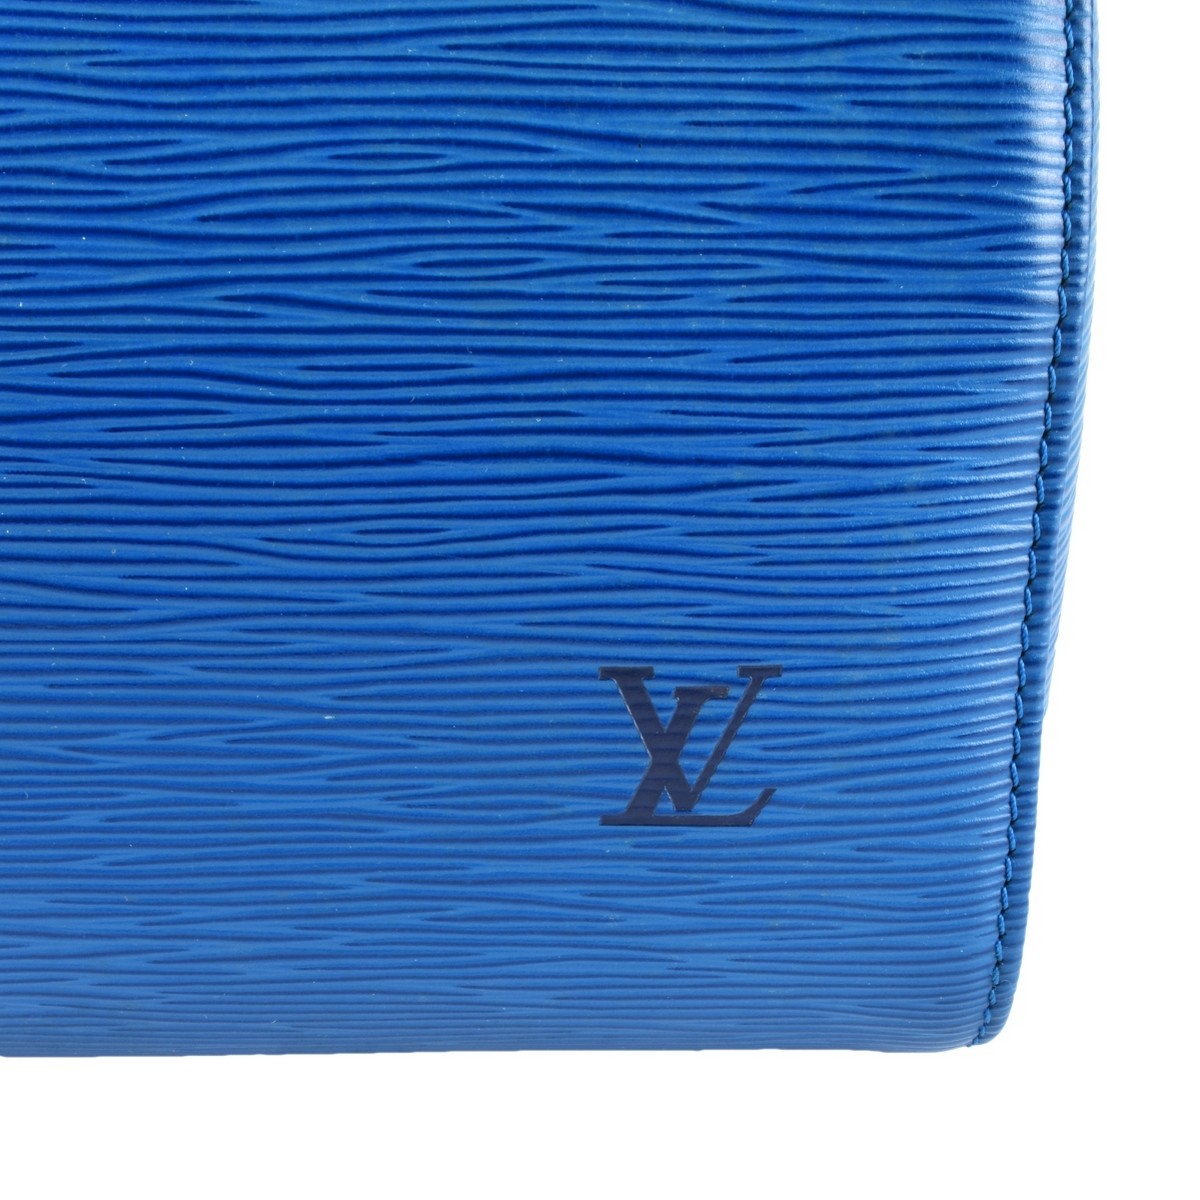 Louis Vuitton Blue Epi Leather Speedy 25 Bag